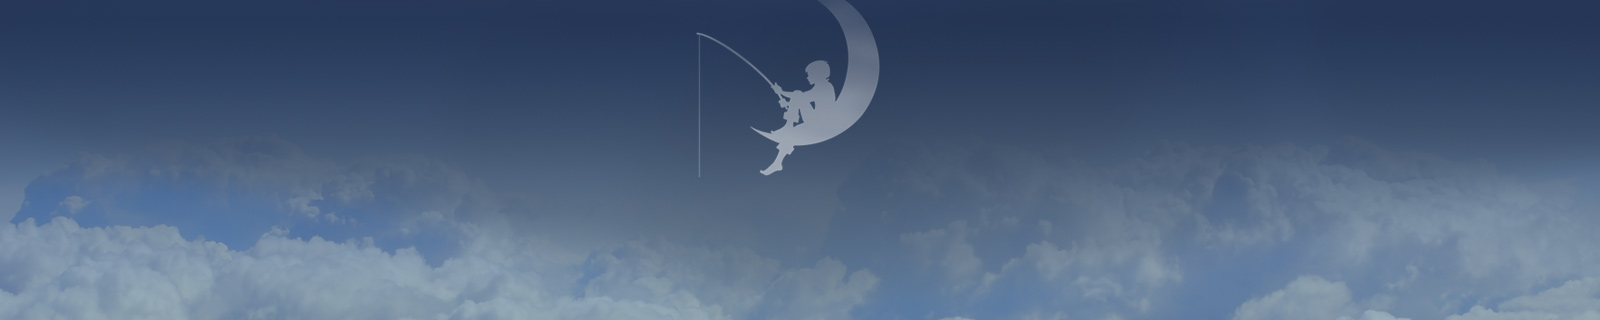 Dreamworks Animation LLC Banner Image